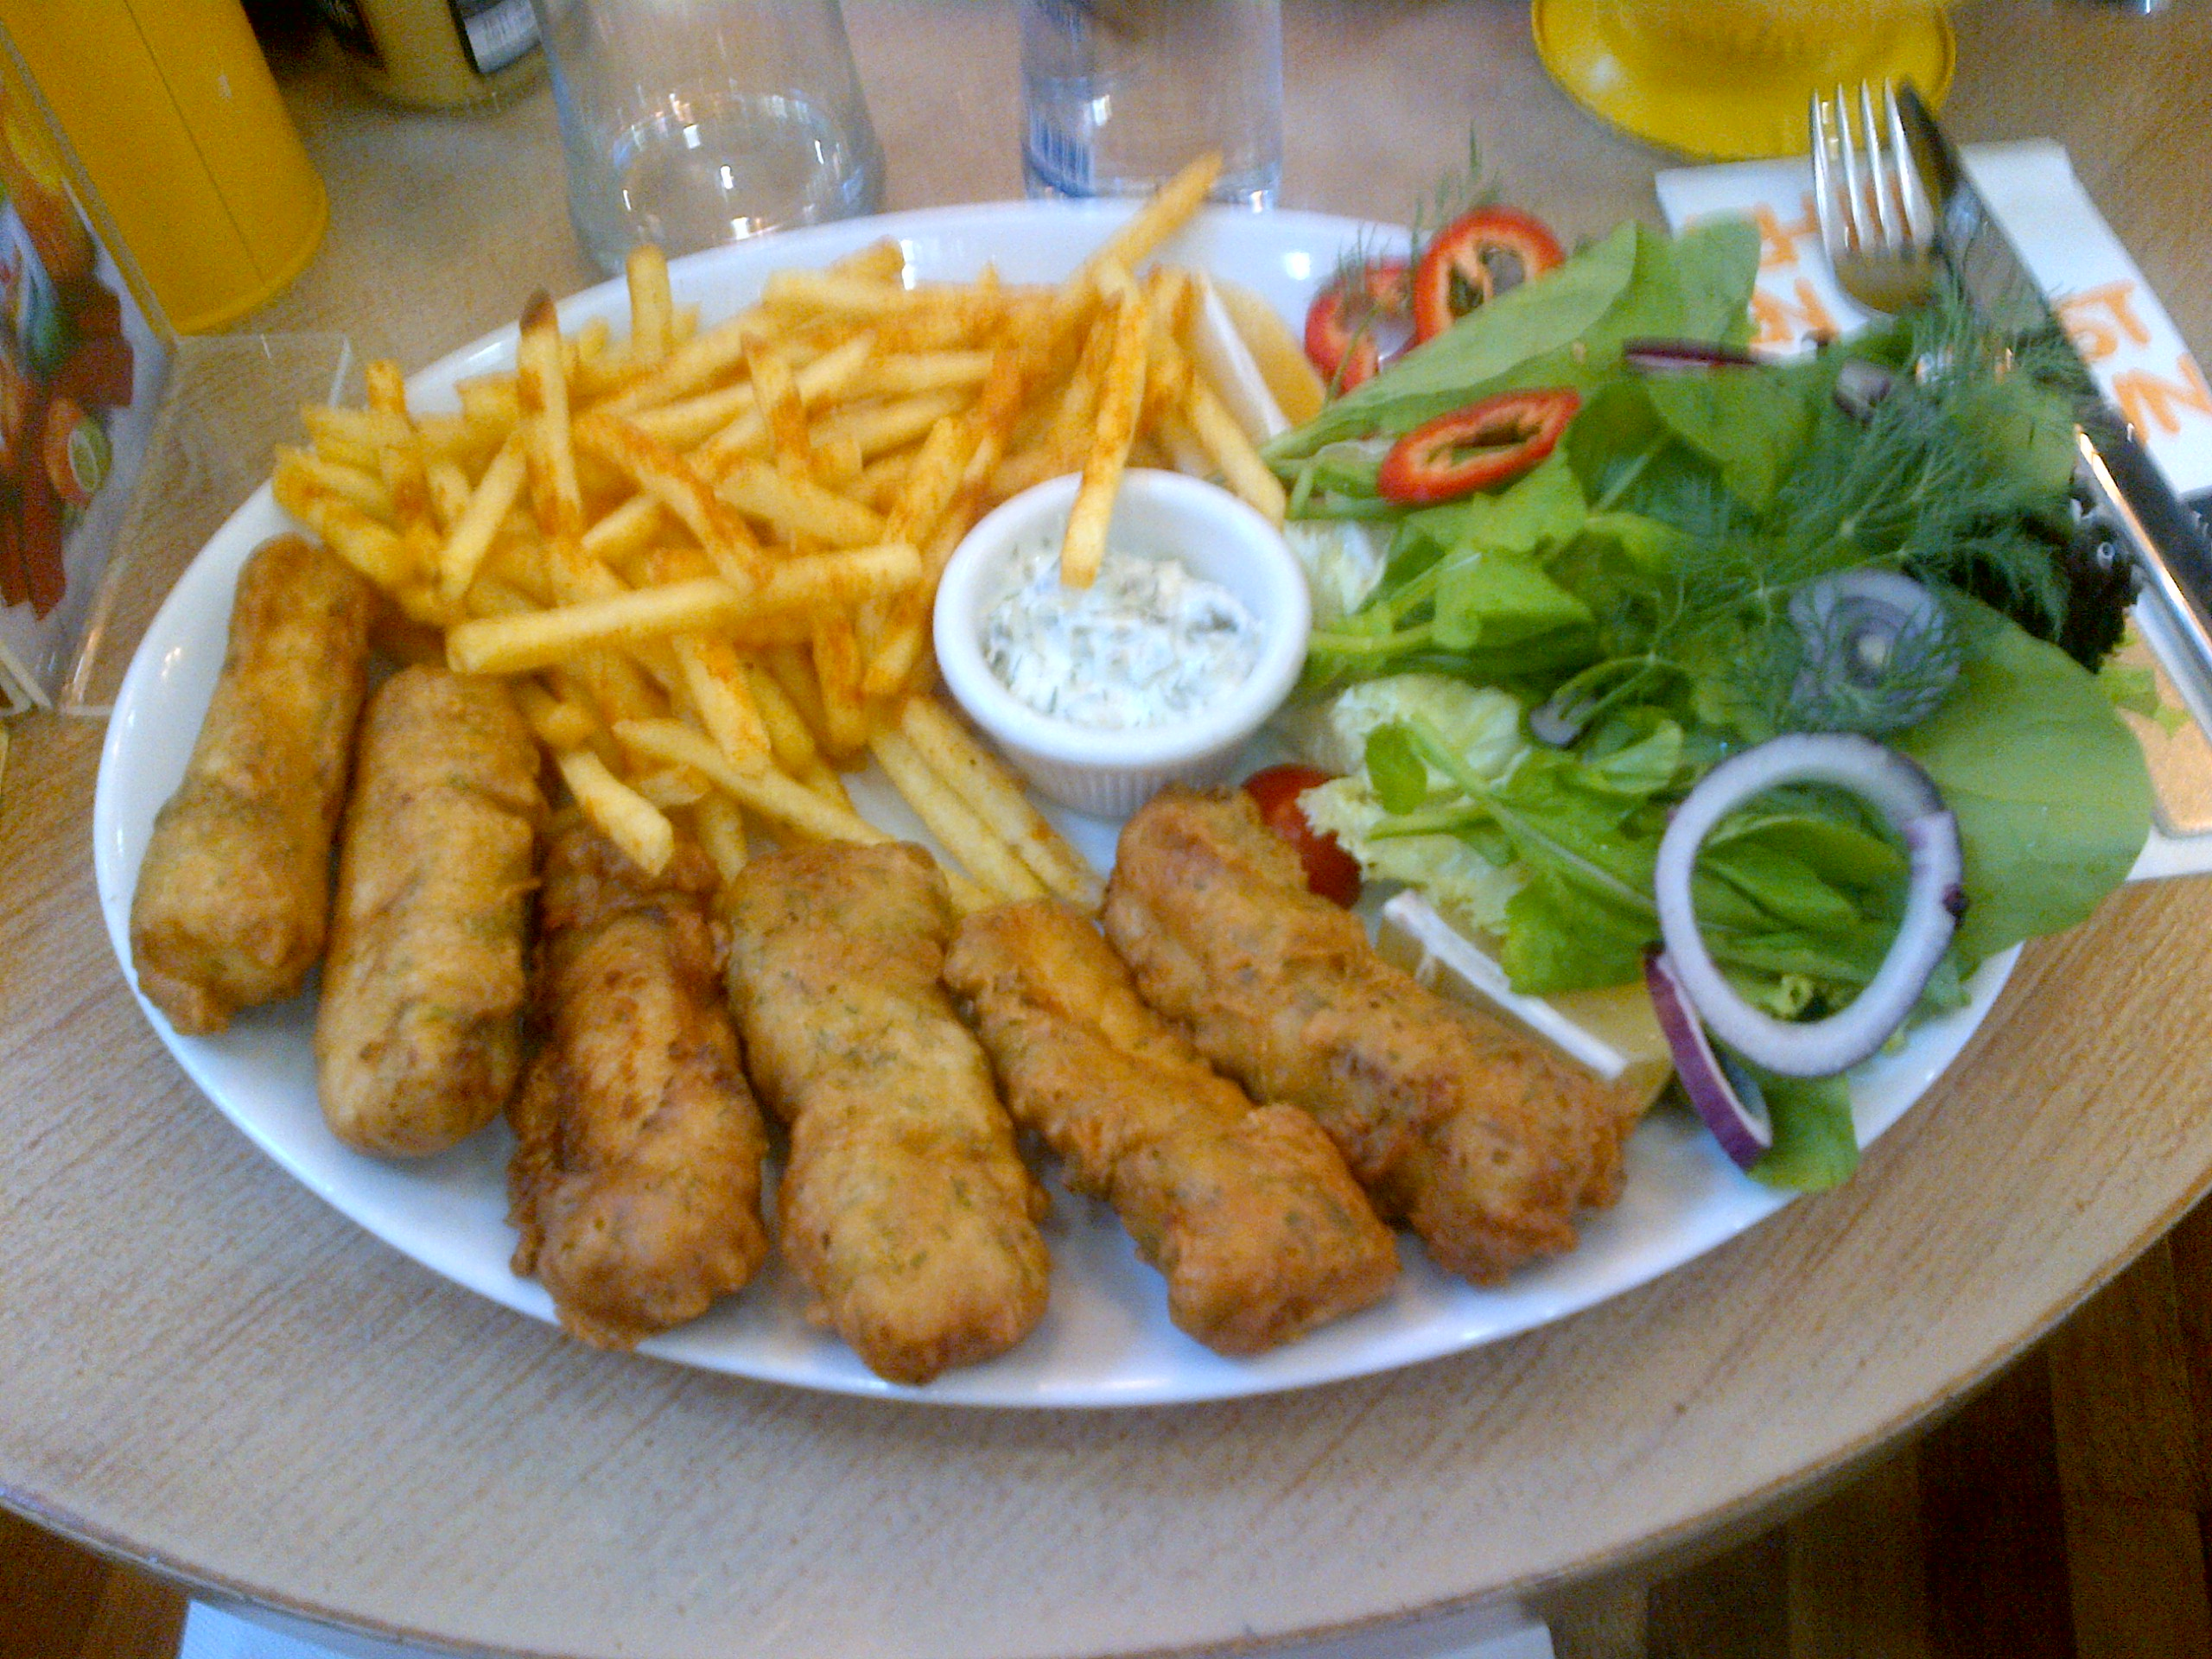 Turkey Frying Times Chart: Fish and chips in Turkey.jpg - Wikimedia Commons,Chart